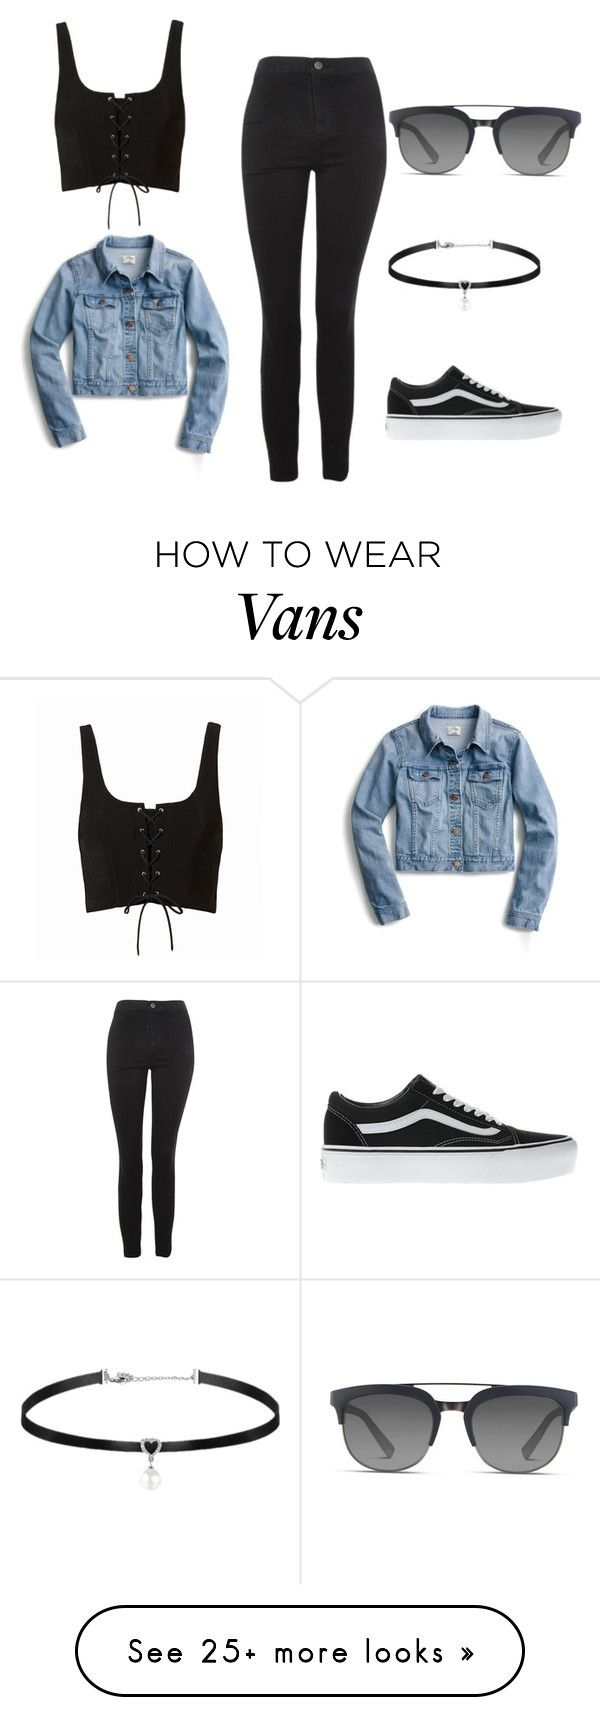 """""""Untitled #30"""" by ivaila02 on Polyvore featuring Topshop, J.Crew, Vans and Dolce&Gabbana"""